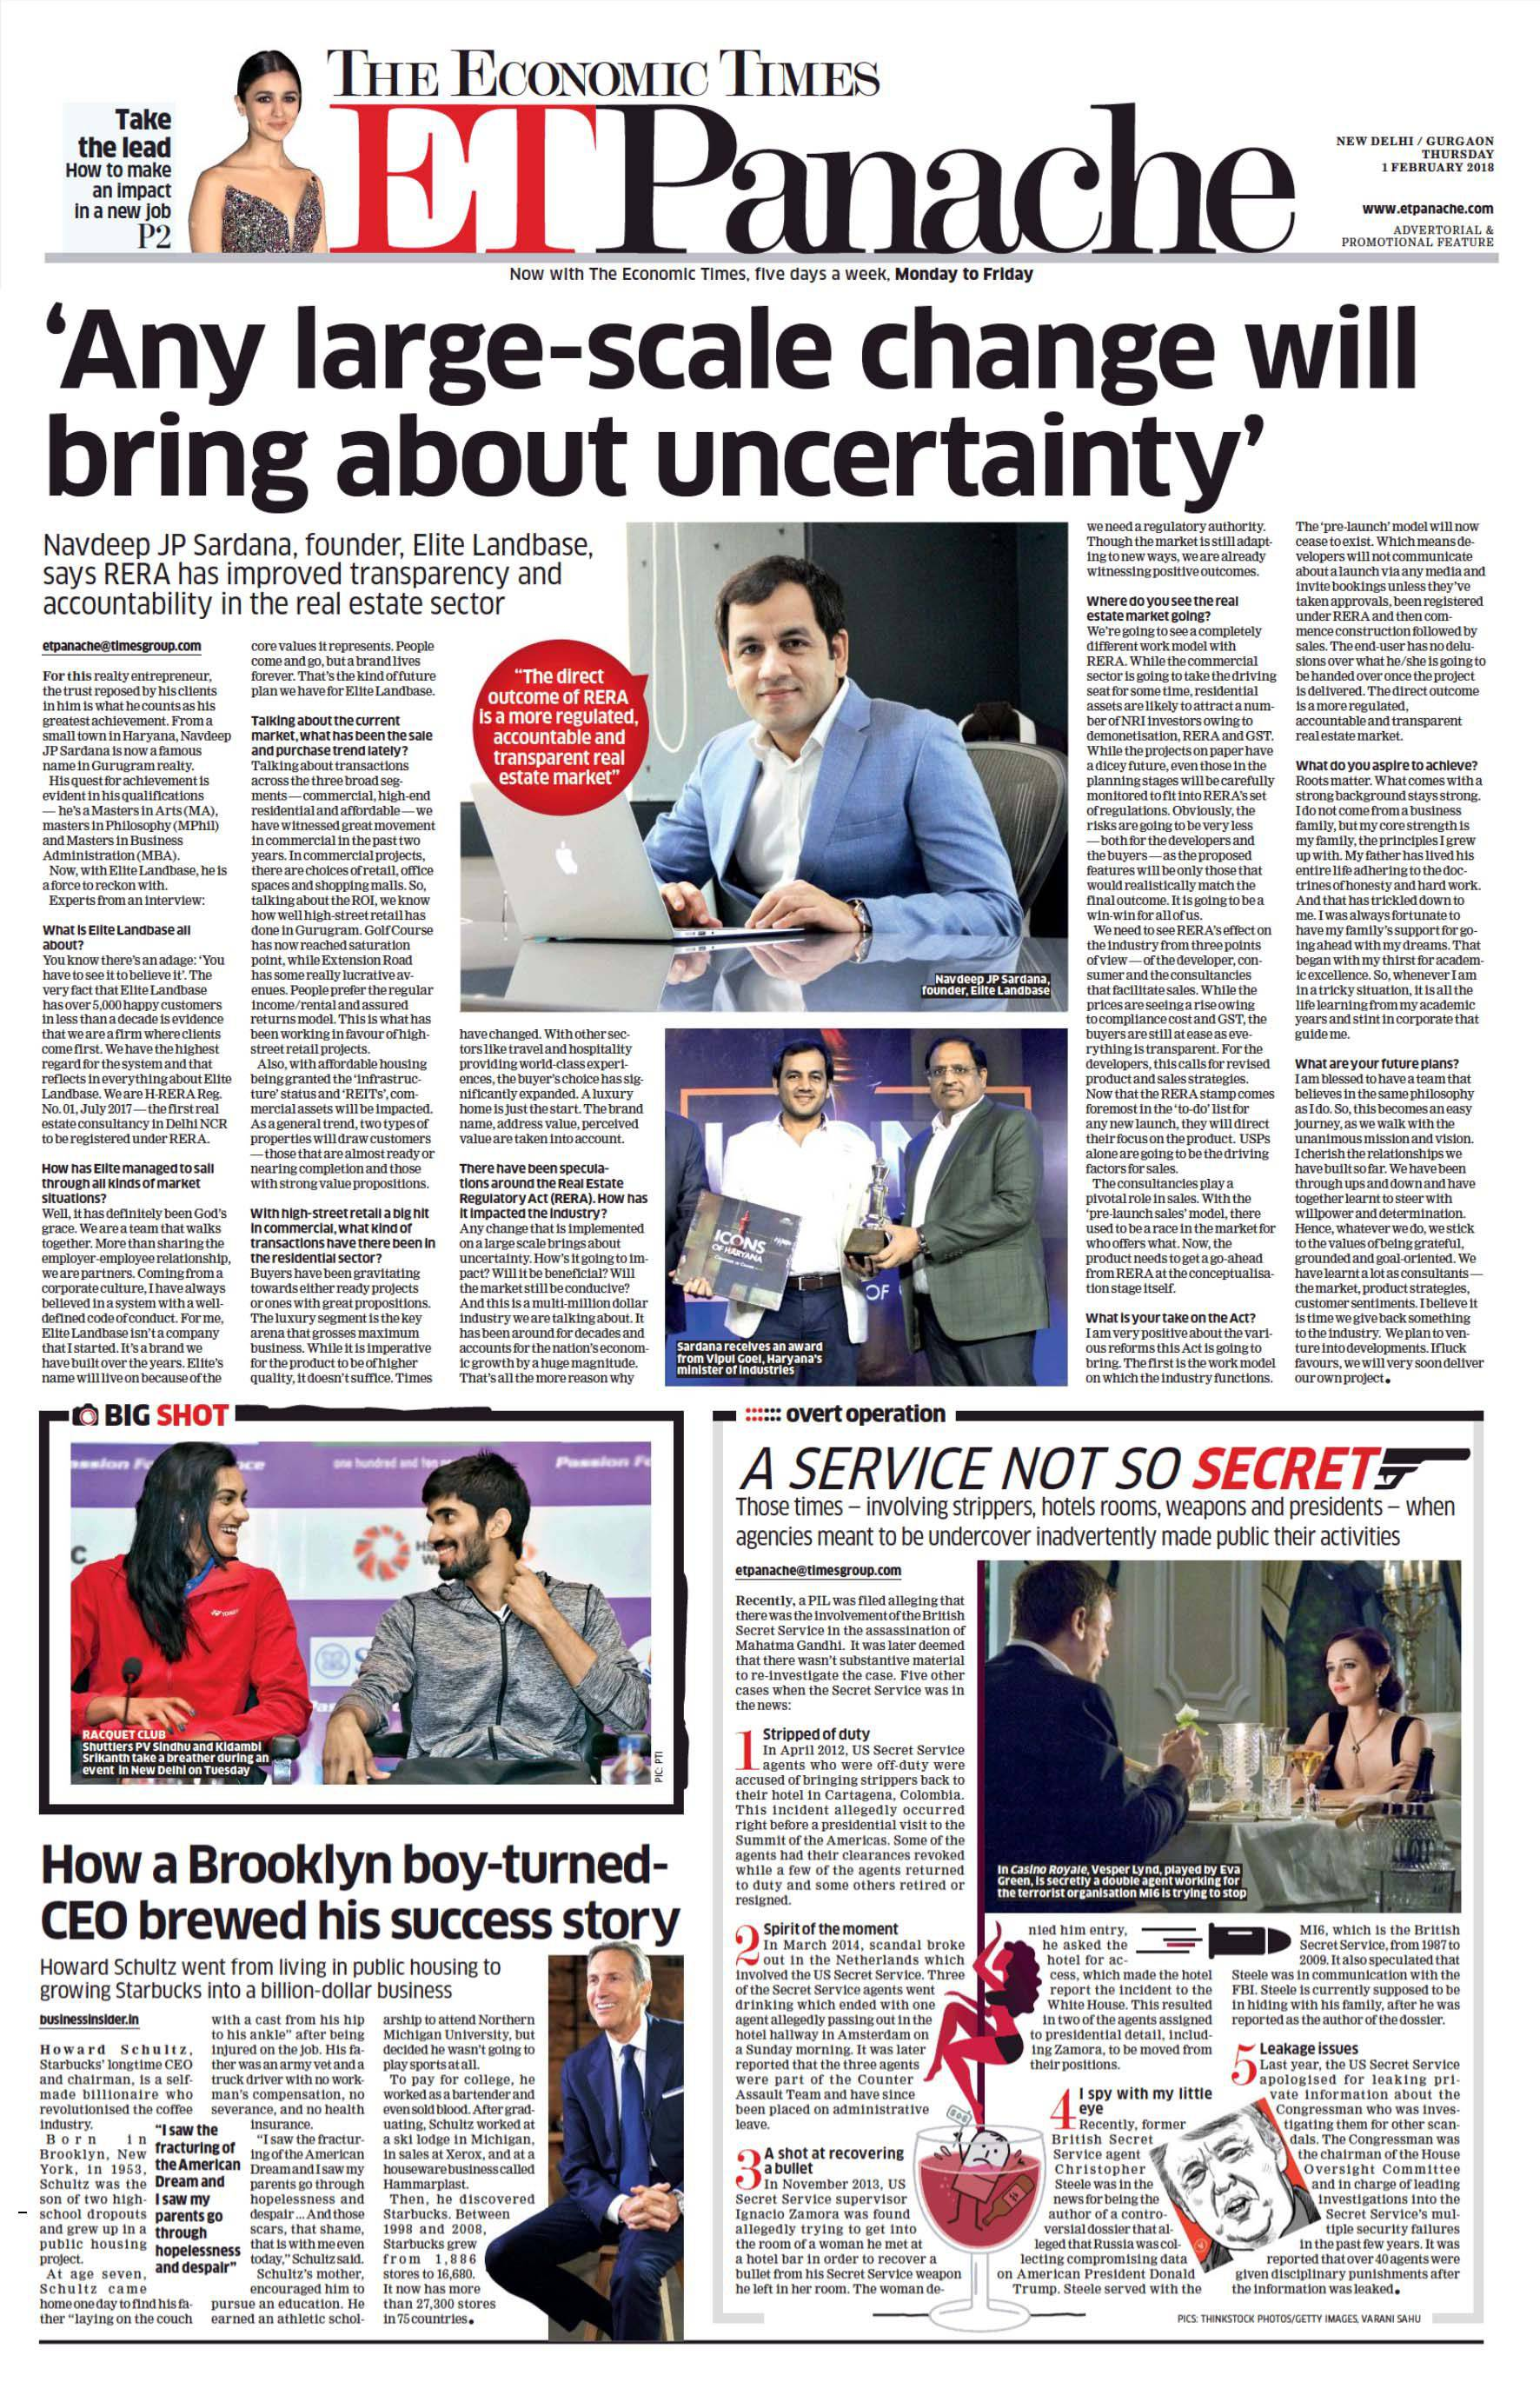 'Any large-scale change will bring about uncertainty'